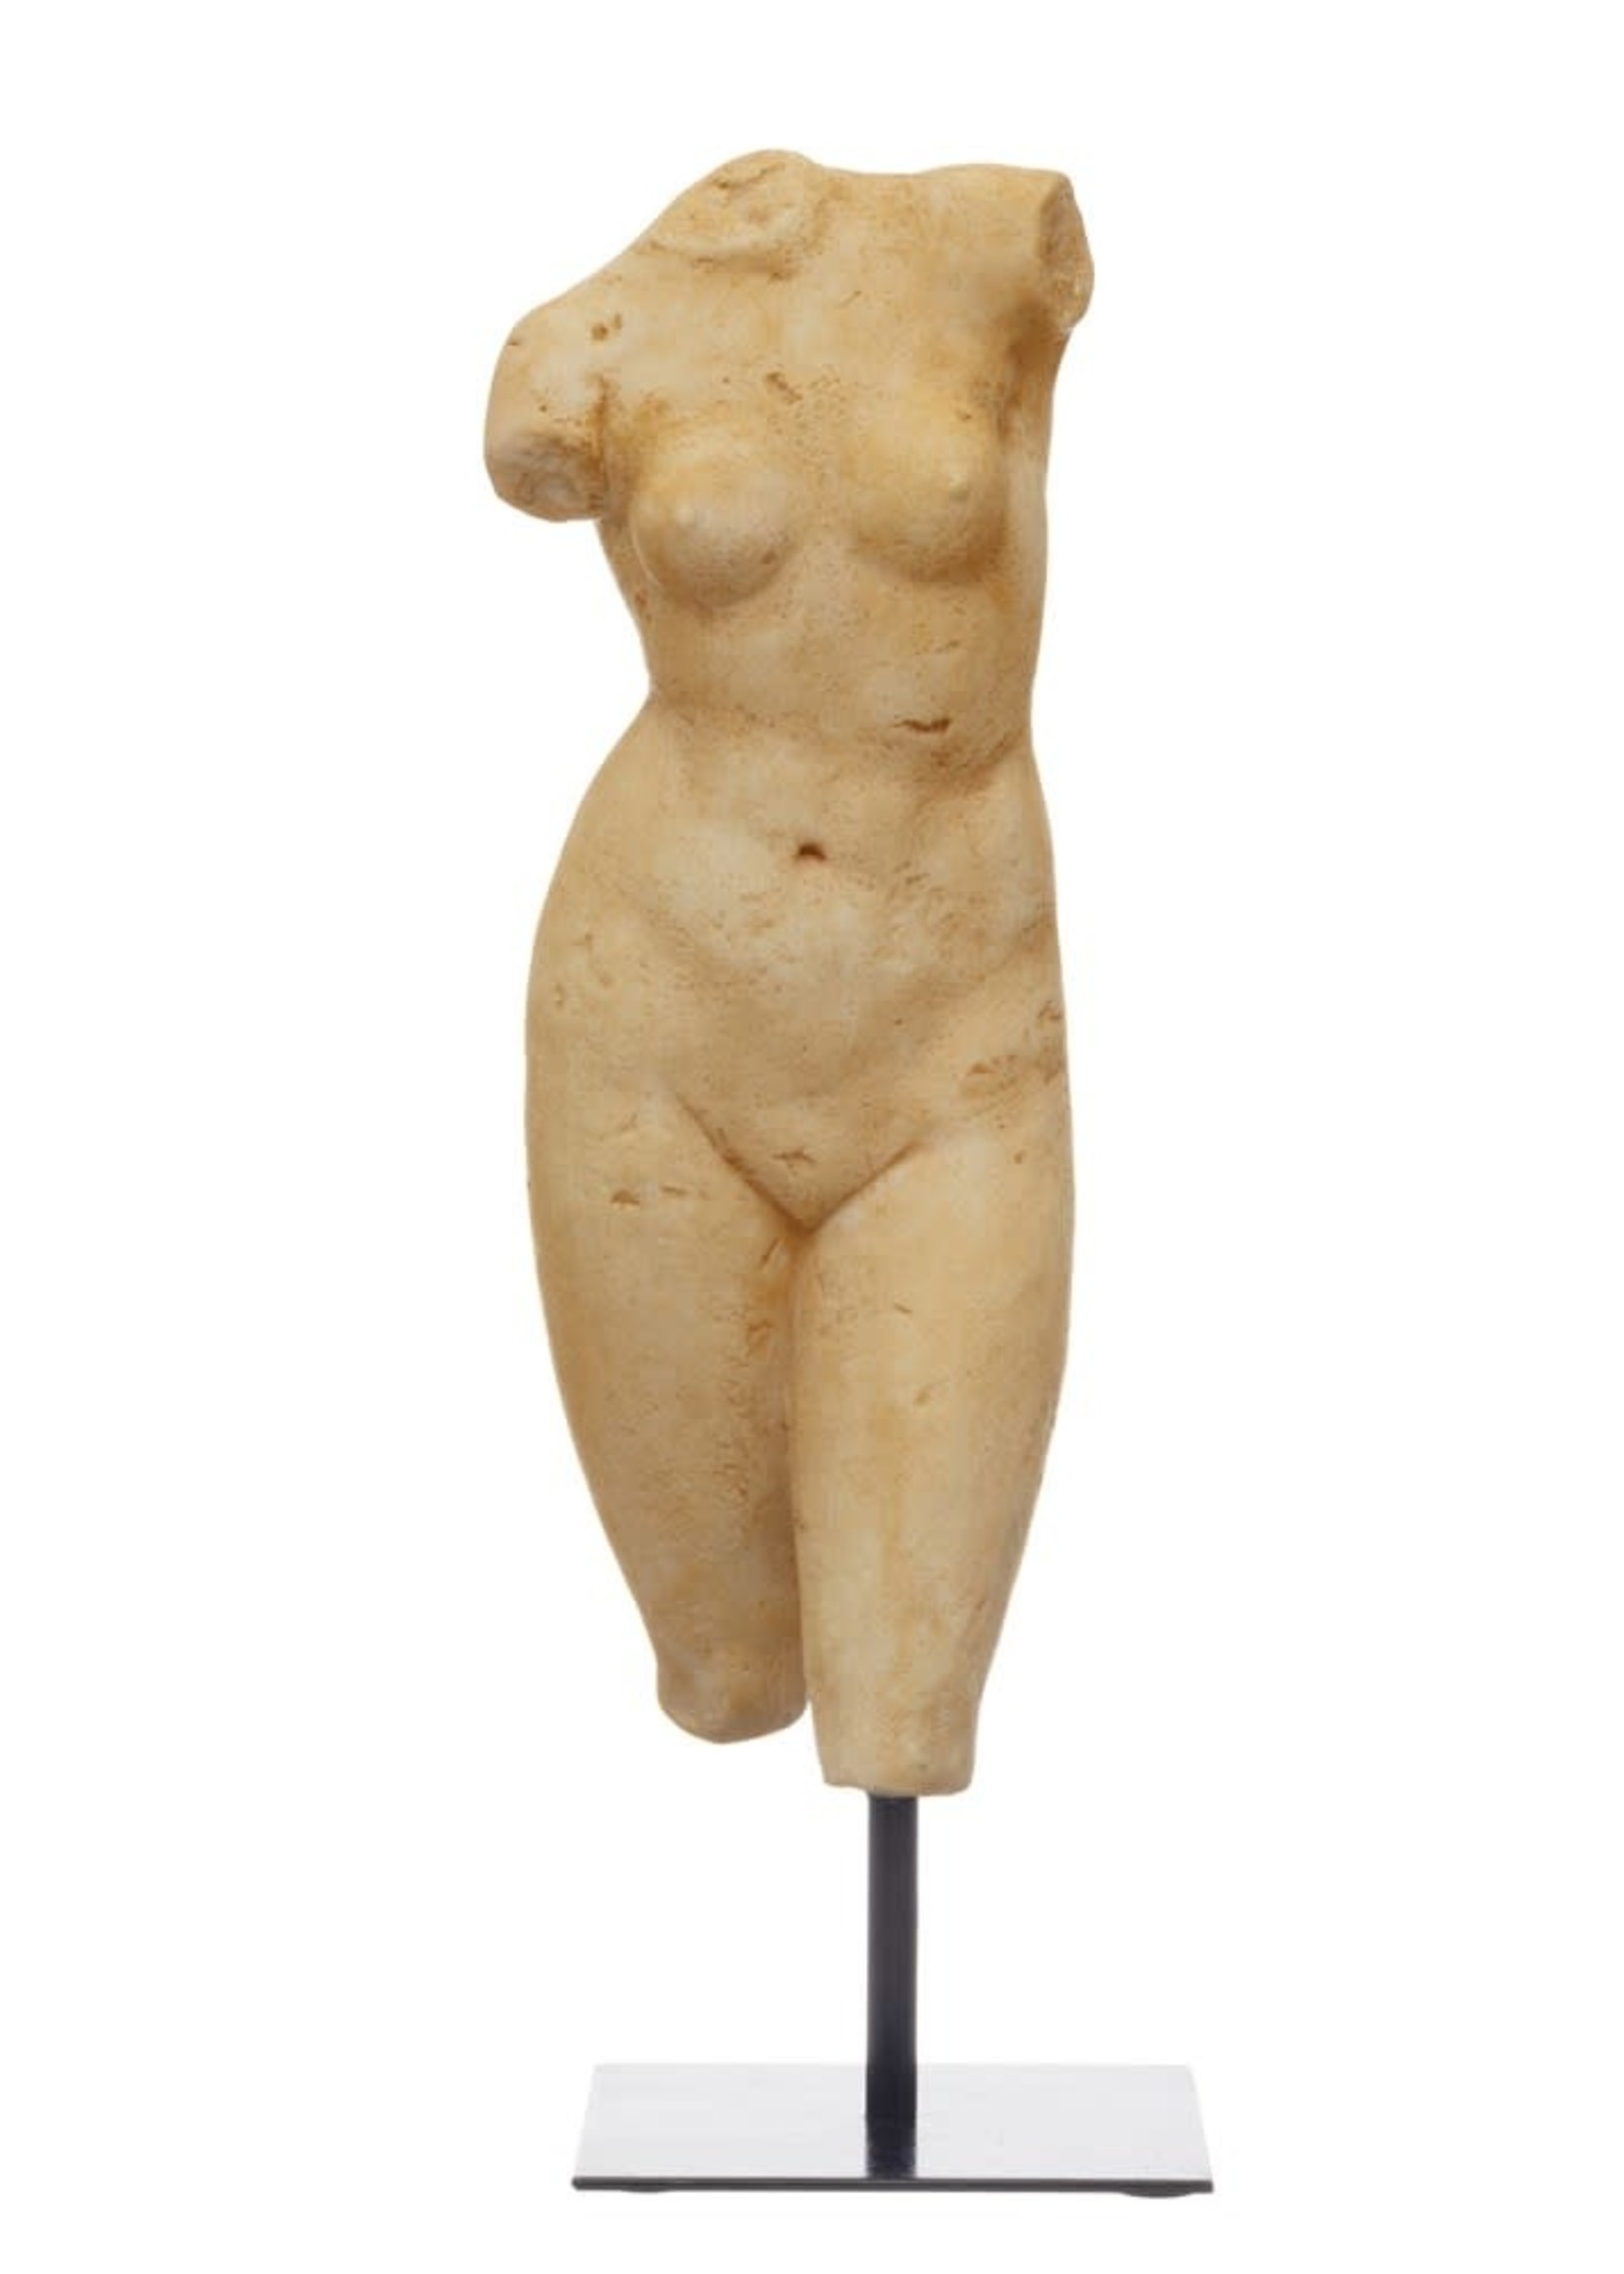 Resin Female Body Figure on Metal Stand, Plaster Finish